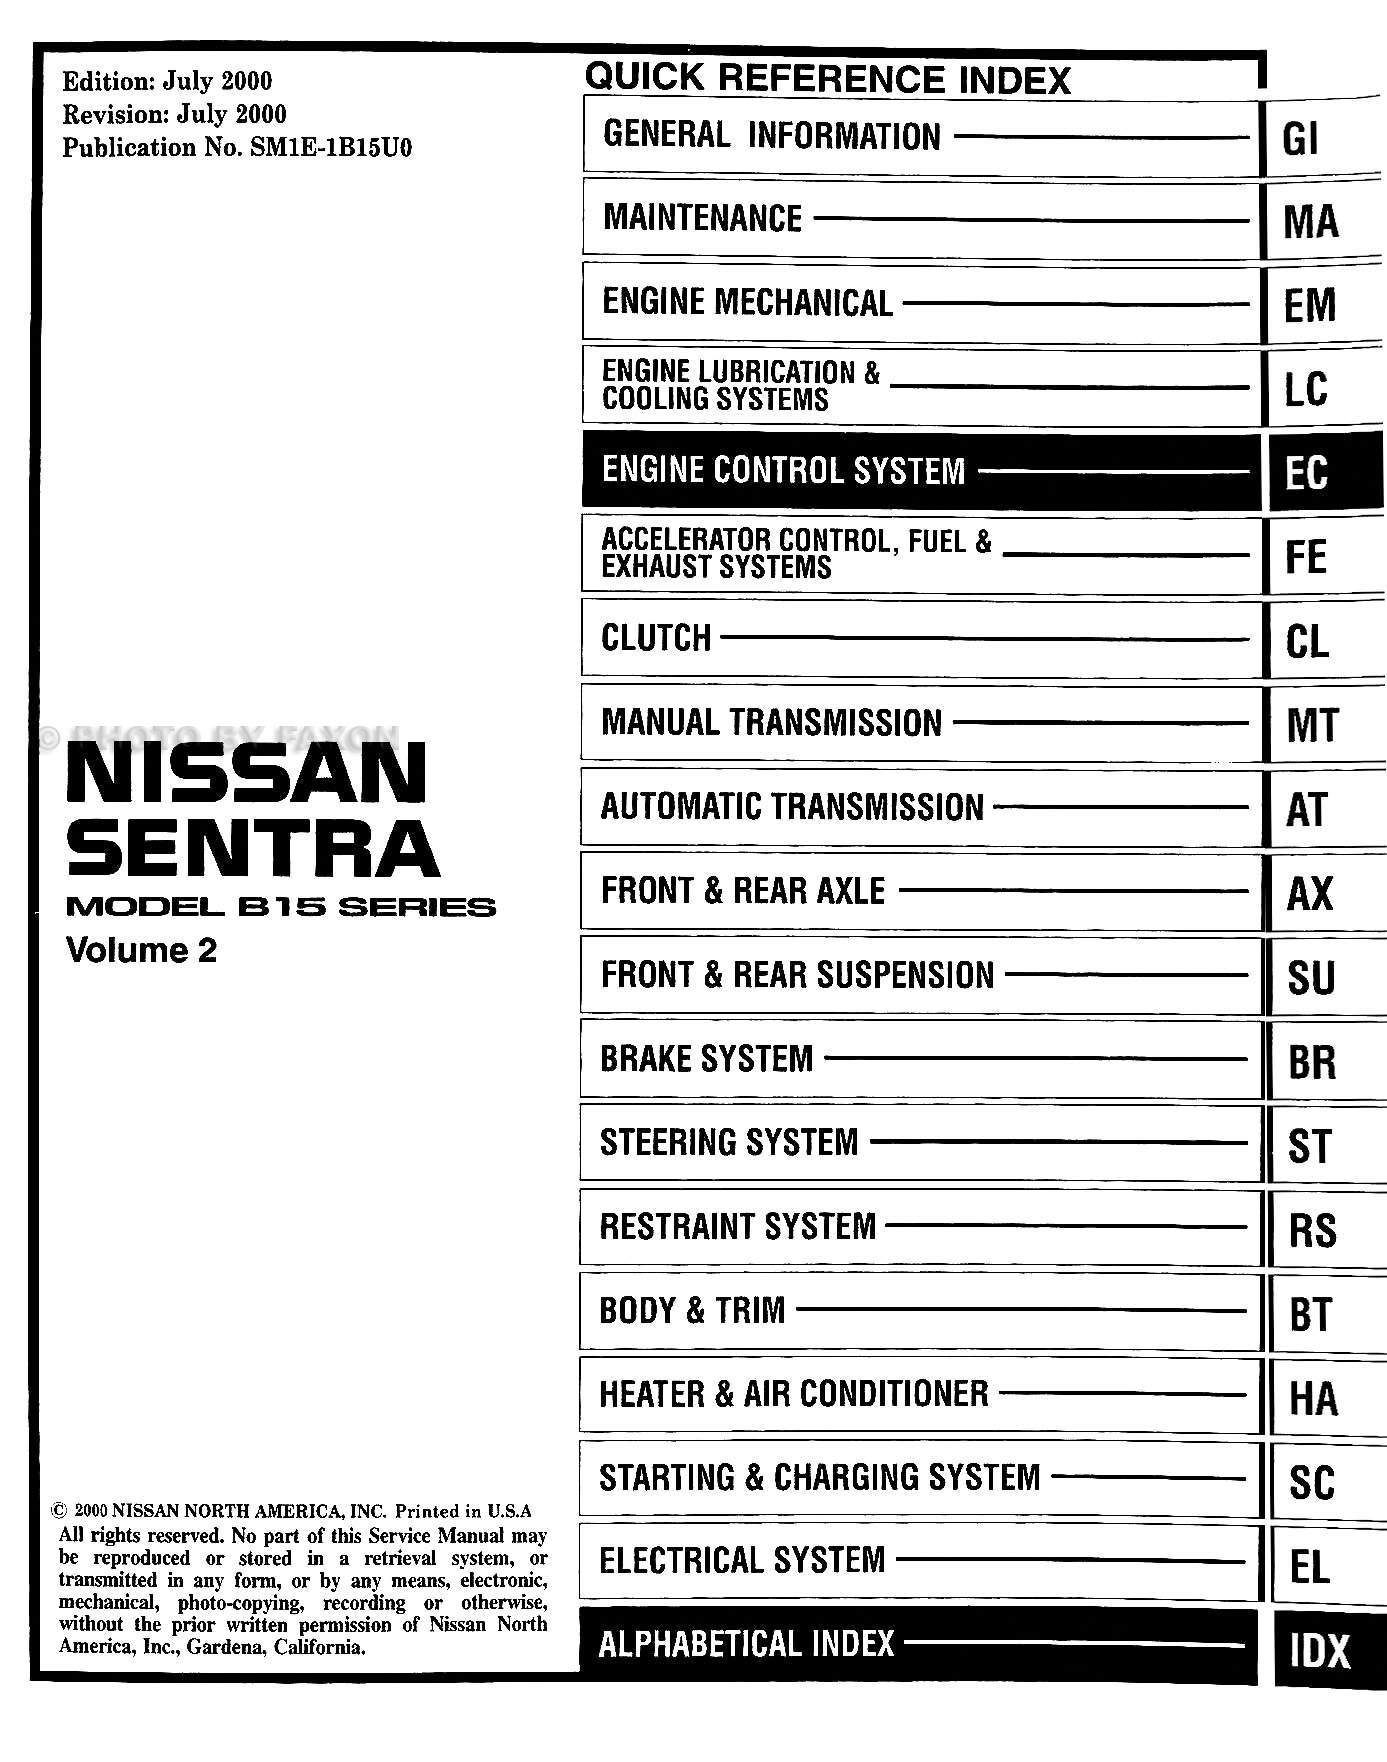 nisssan sentra 2005 repair manual rh nisssan sentra 2005 repair manual tempower us 2007 nissan service and maintenance guide 2003 Nissan 370Z